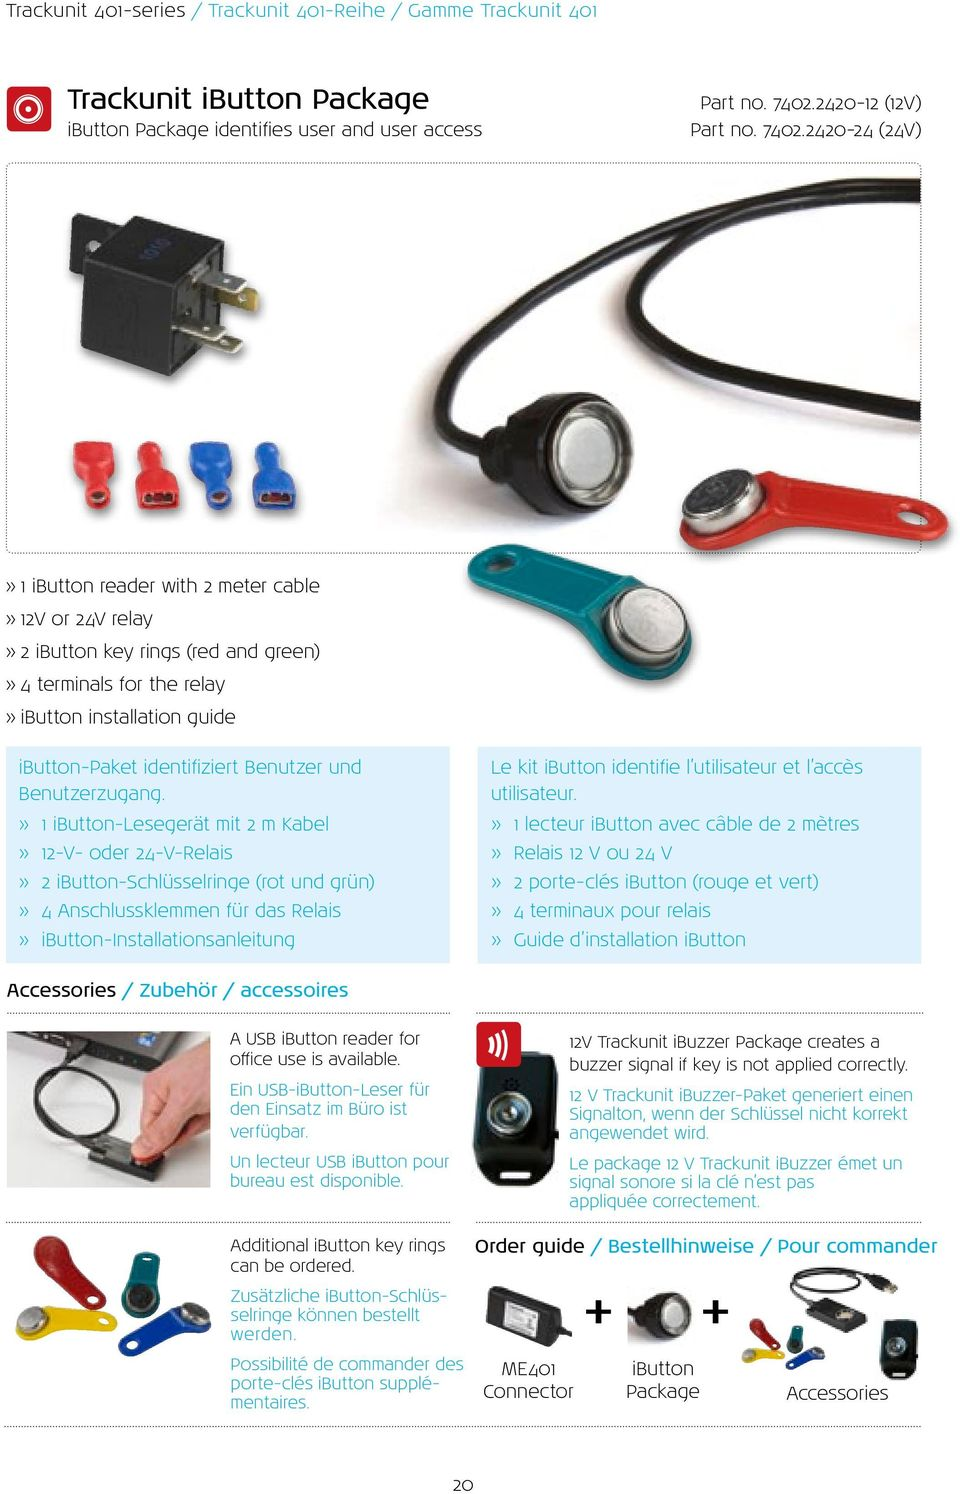 2420-24 (24V) 1 ibutton reader with 2 meter cable 12V or 24V relay 2 ibutton key rings (red and green) 4 terminals for the relay ibutton installation guide ibutton-paket identifiziert Benutzer und